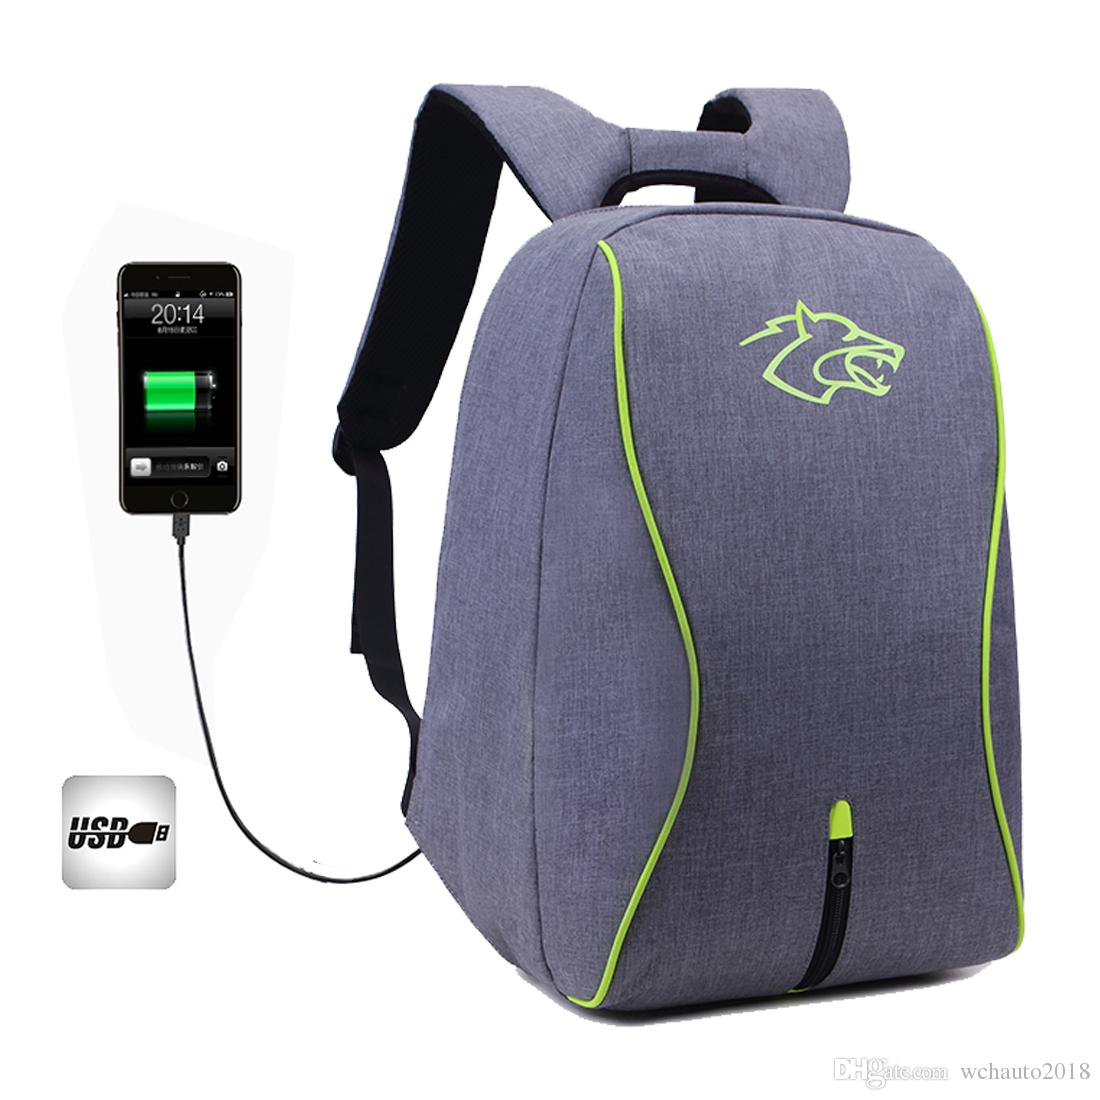 Outdoor Travel Laptop Backpack with USB Port Waterproof Anti-Theft Large Shoulder Bag Daypack College Student Backpack for Man